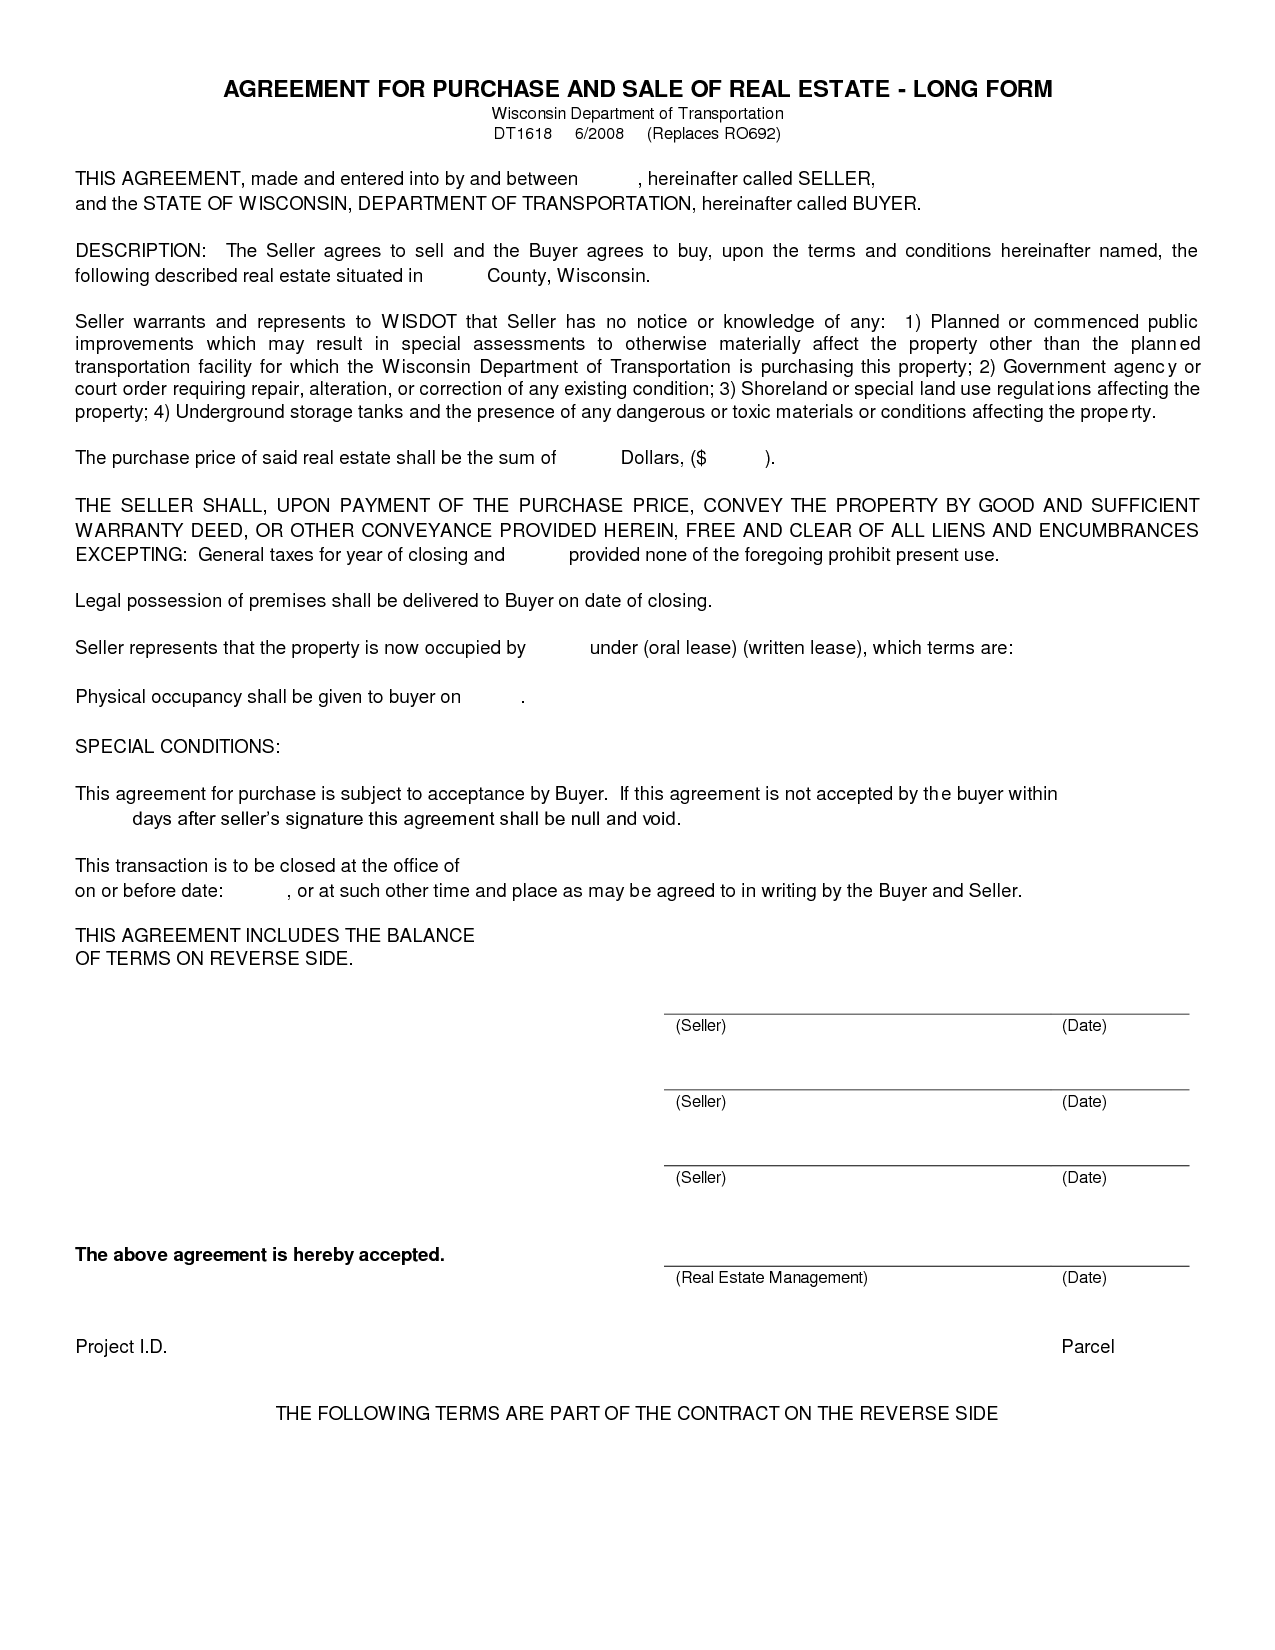 Free Blank Purchase Agreement Form images agreement to purchase – Sample Real Estate Purchase Agreement Template